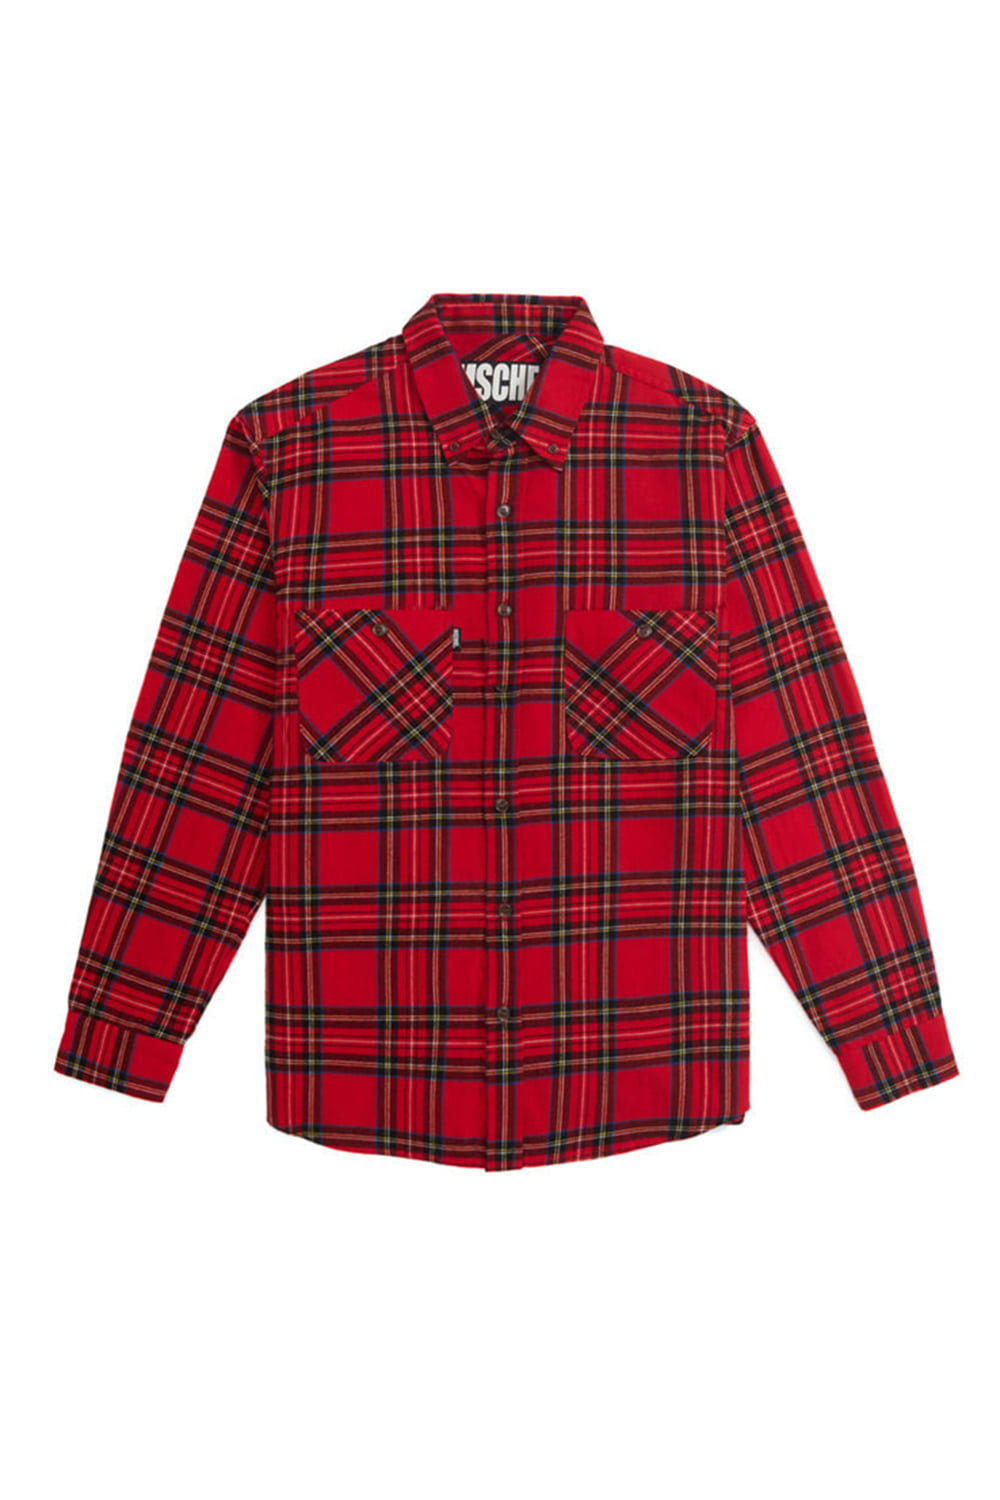 CHECK SHIRT_tartan check red